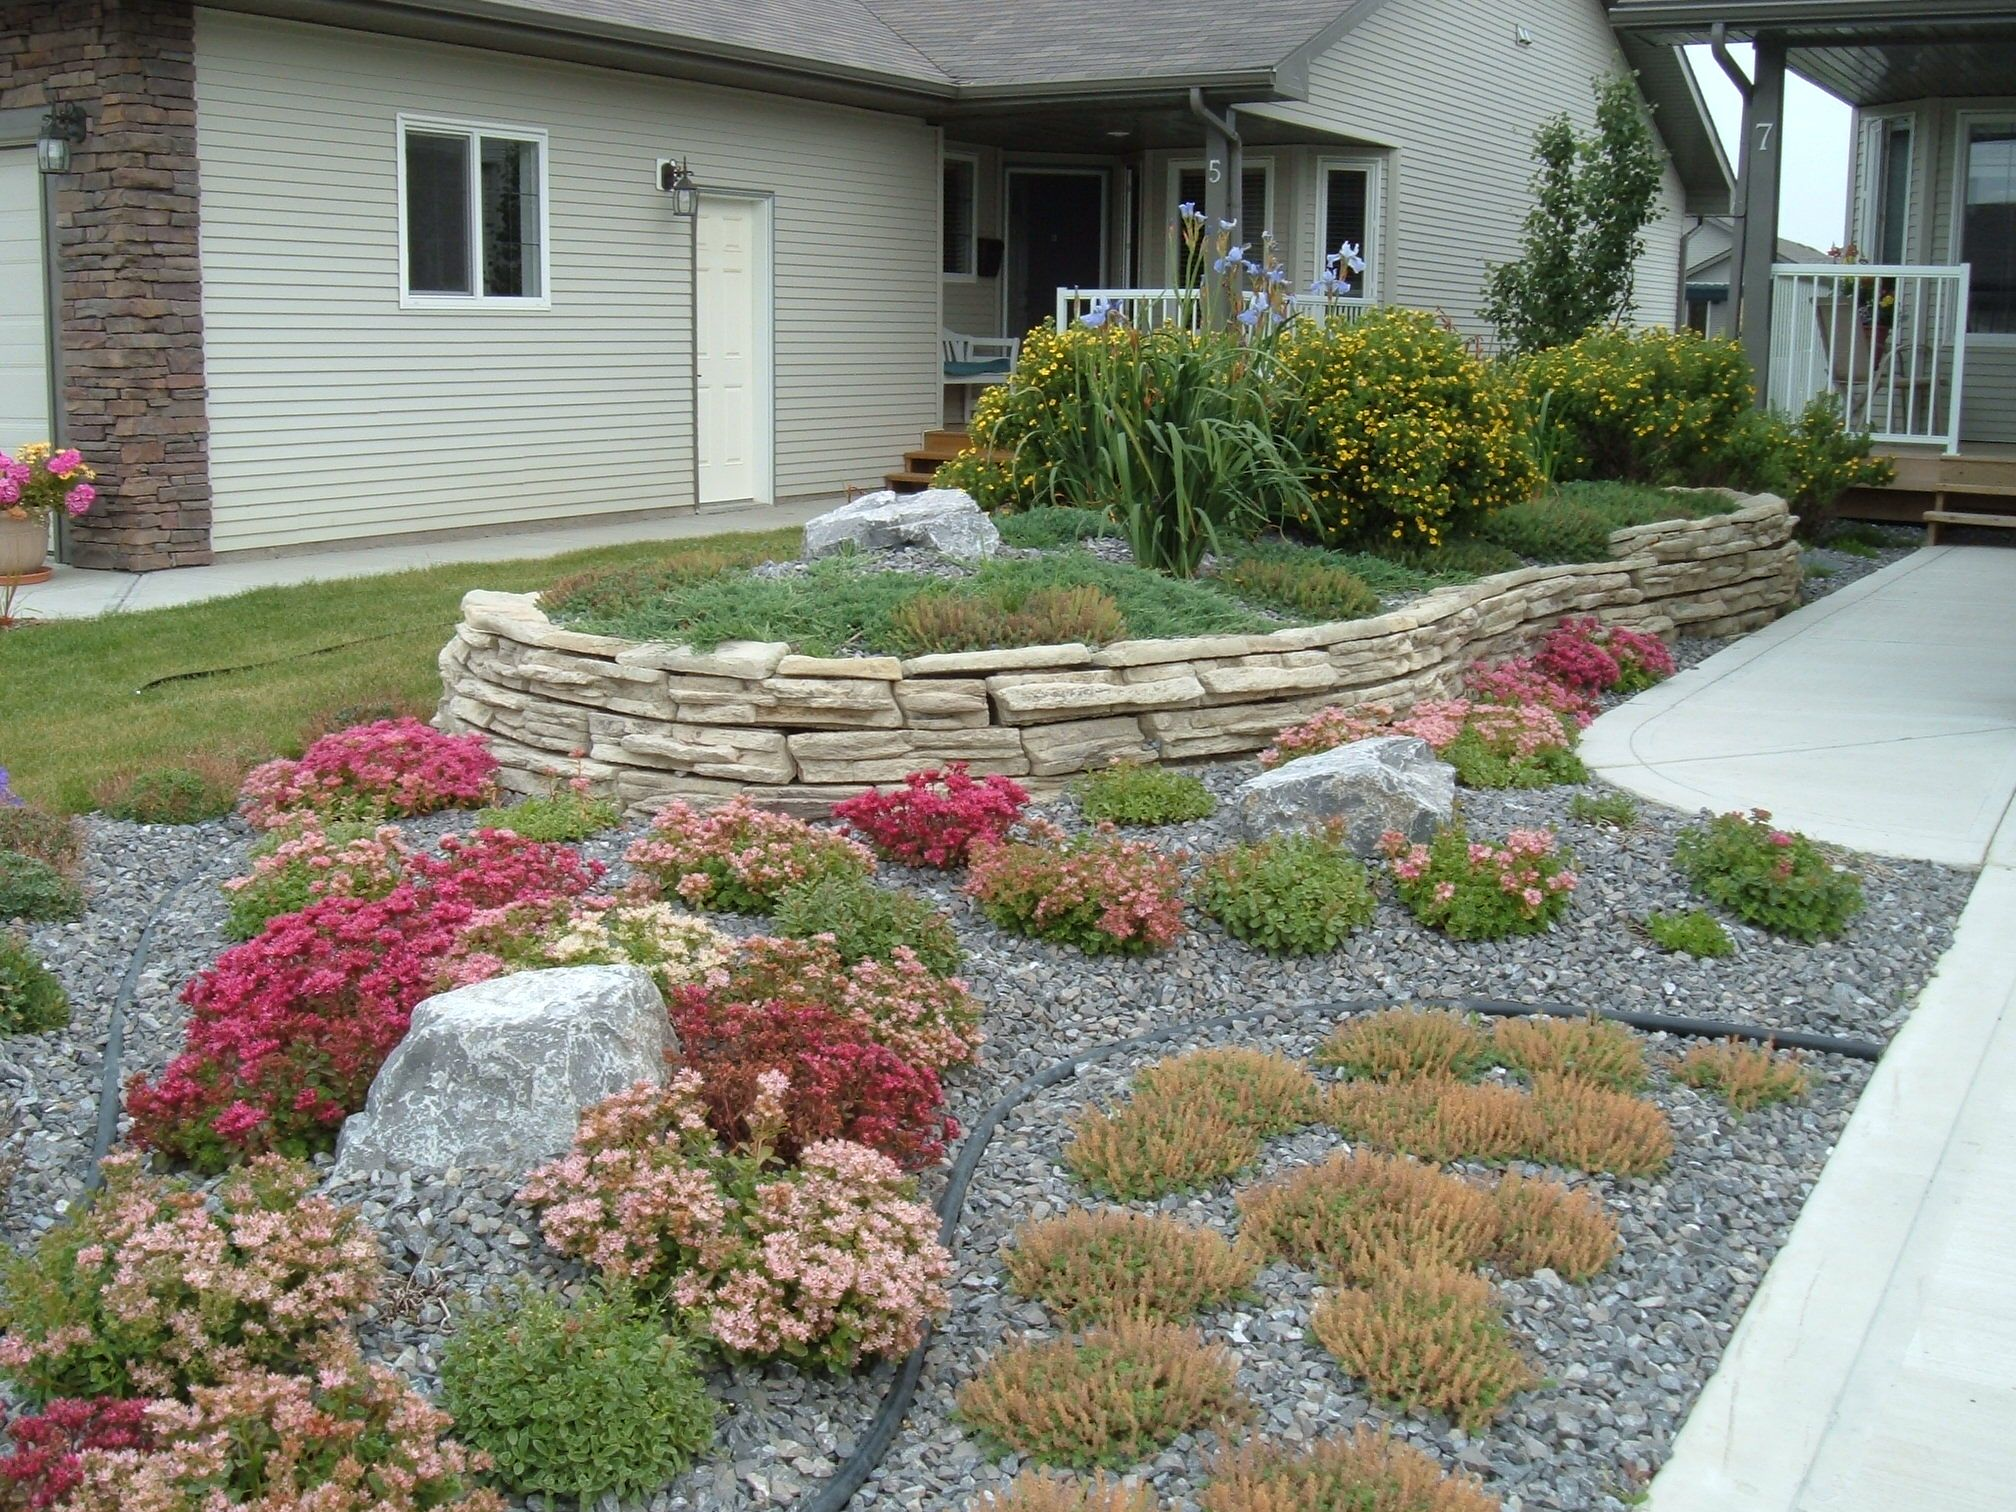 Minimal maintenance landscaping a no lawn front yard with for Front lawn ideas